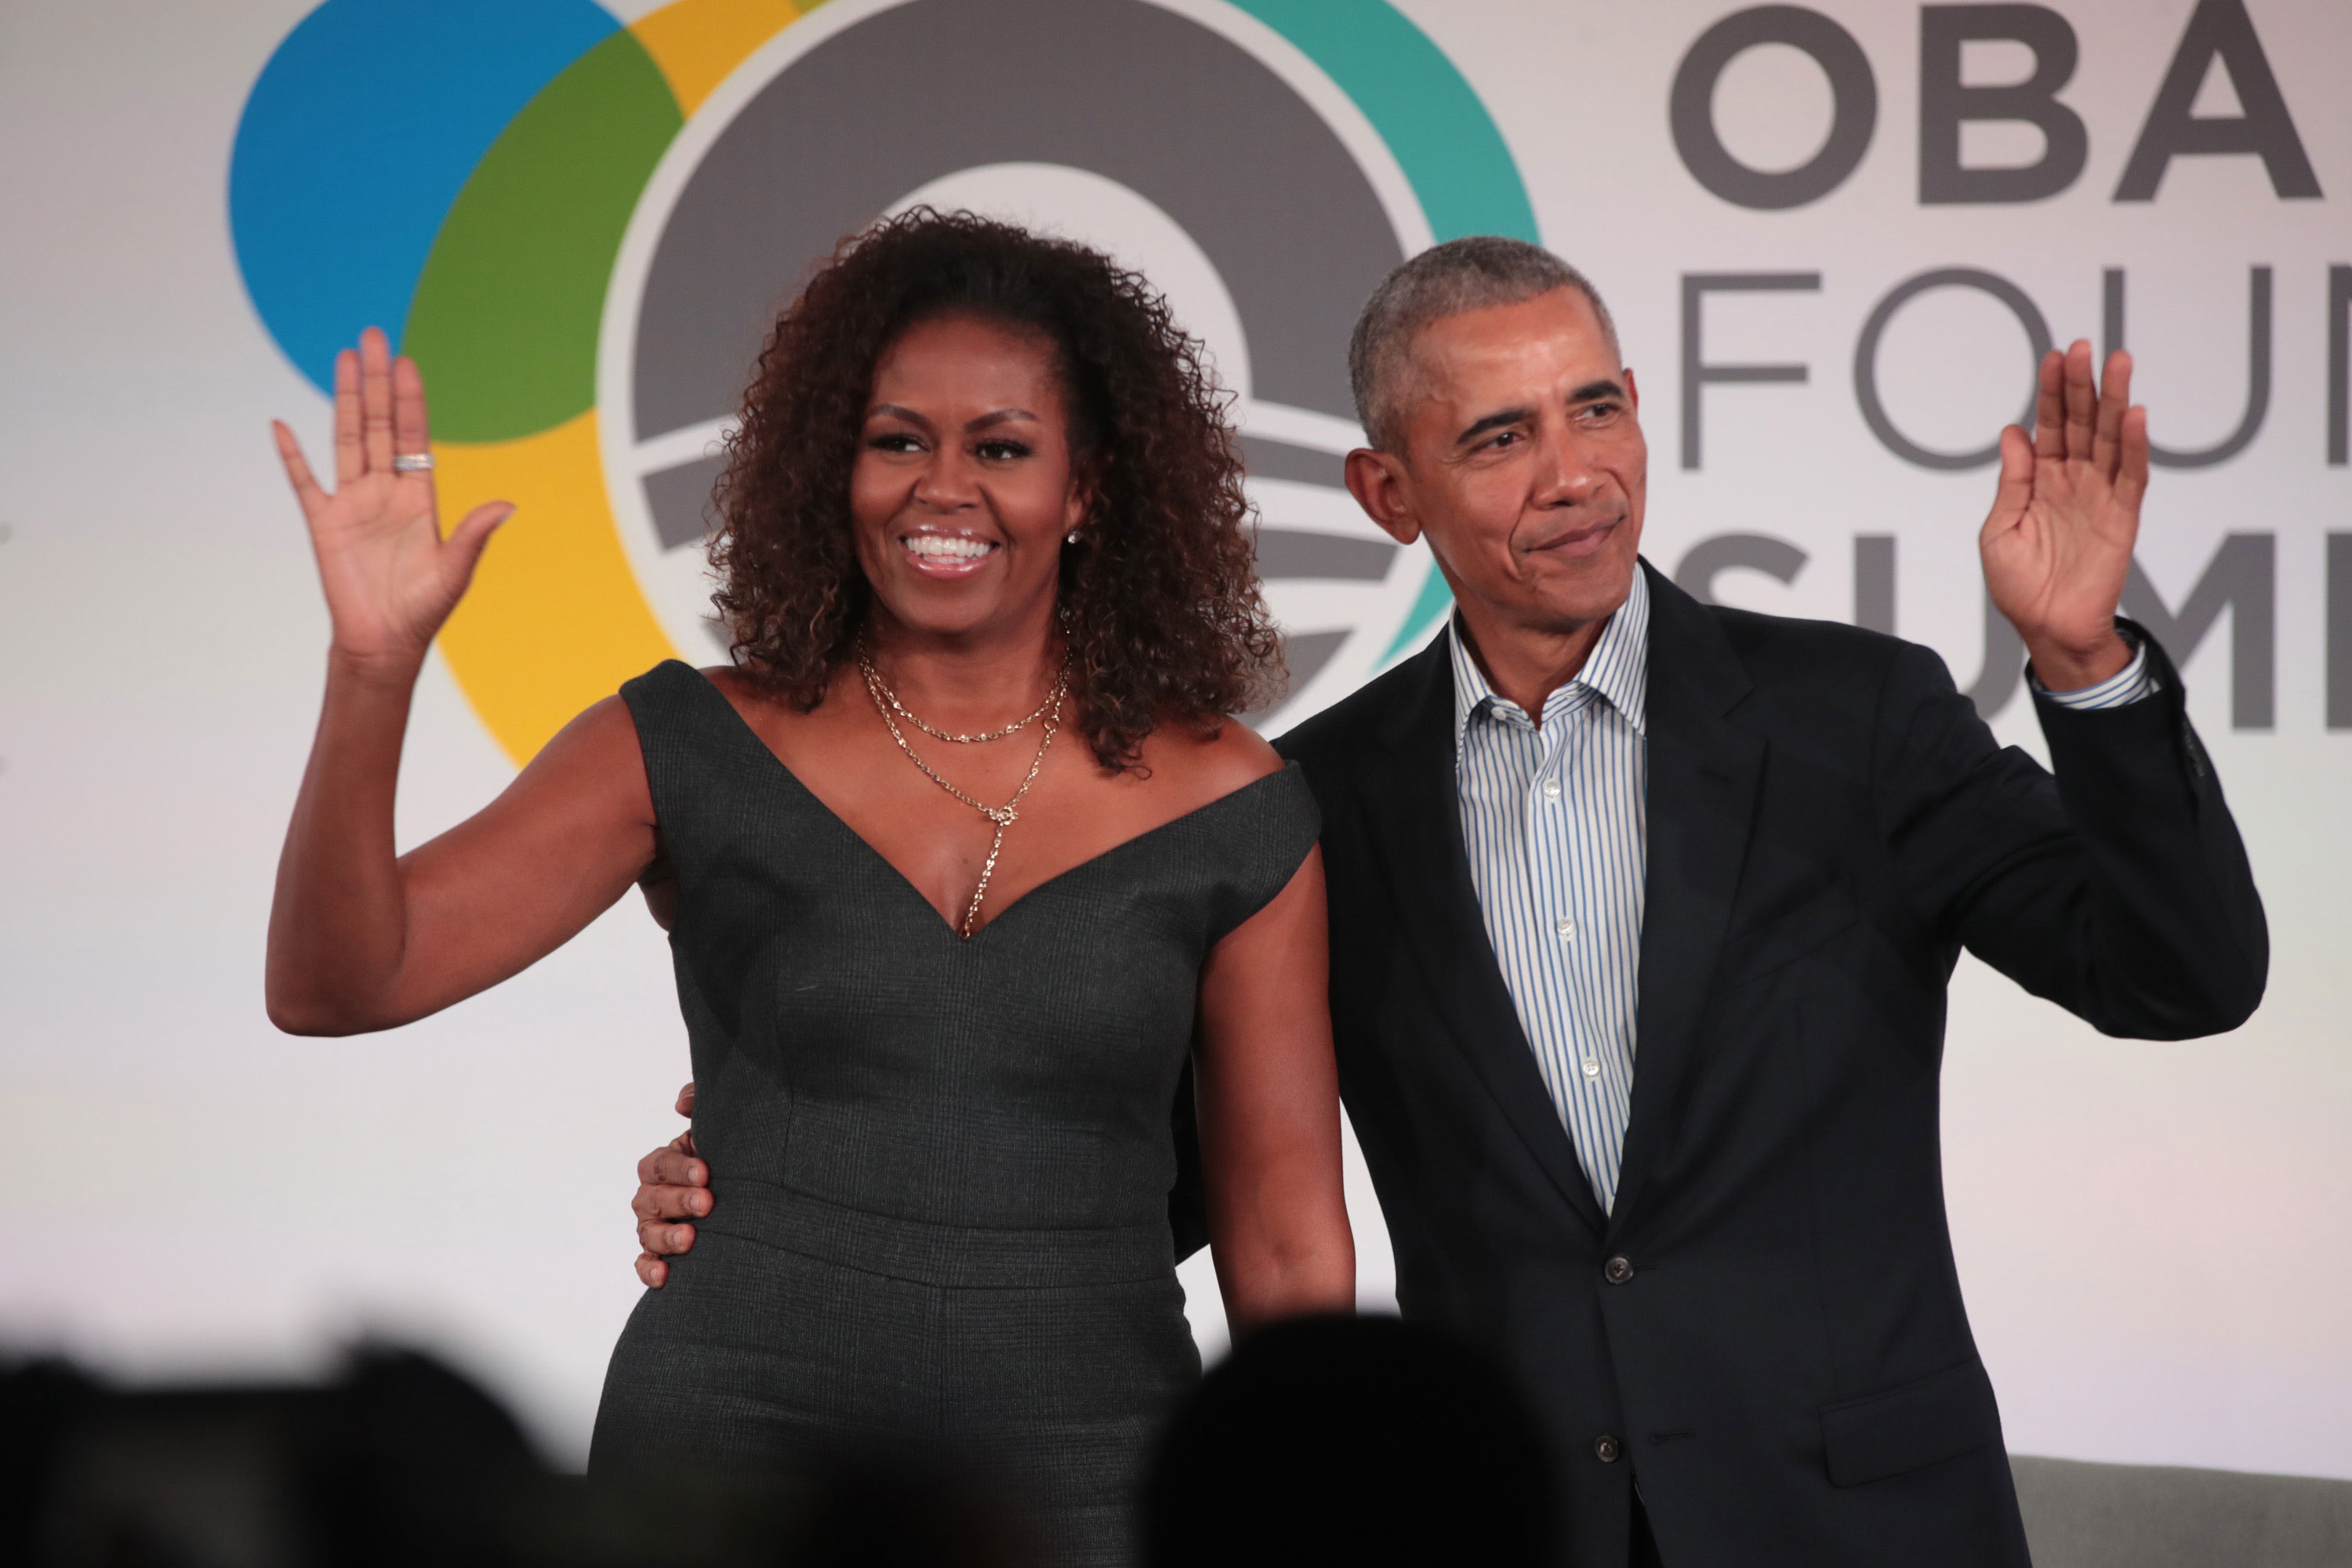 Former U.S. President Barack Obama and his wife Michelle close the Obama Foundation Summit together on the campus of the Illinois Institute of Technology on October 29, in Chicago.